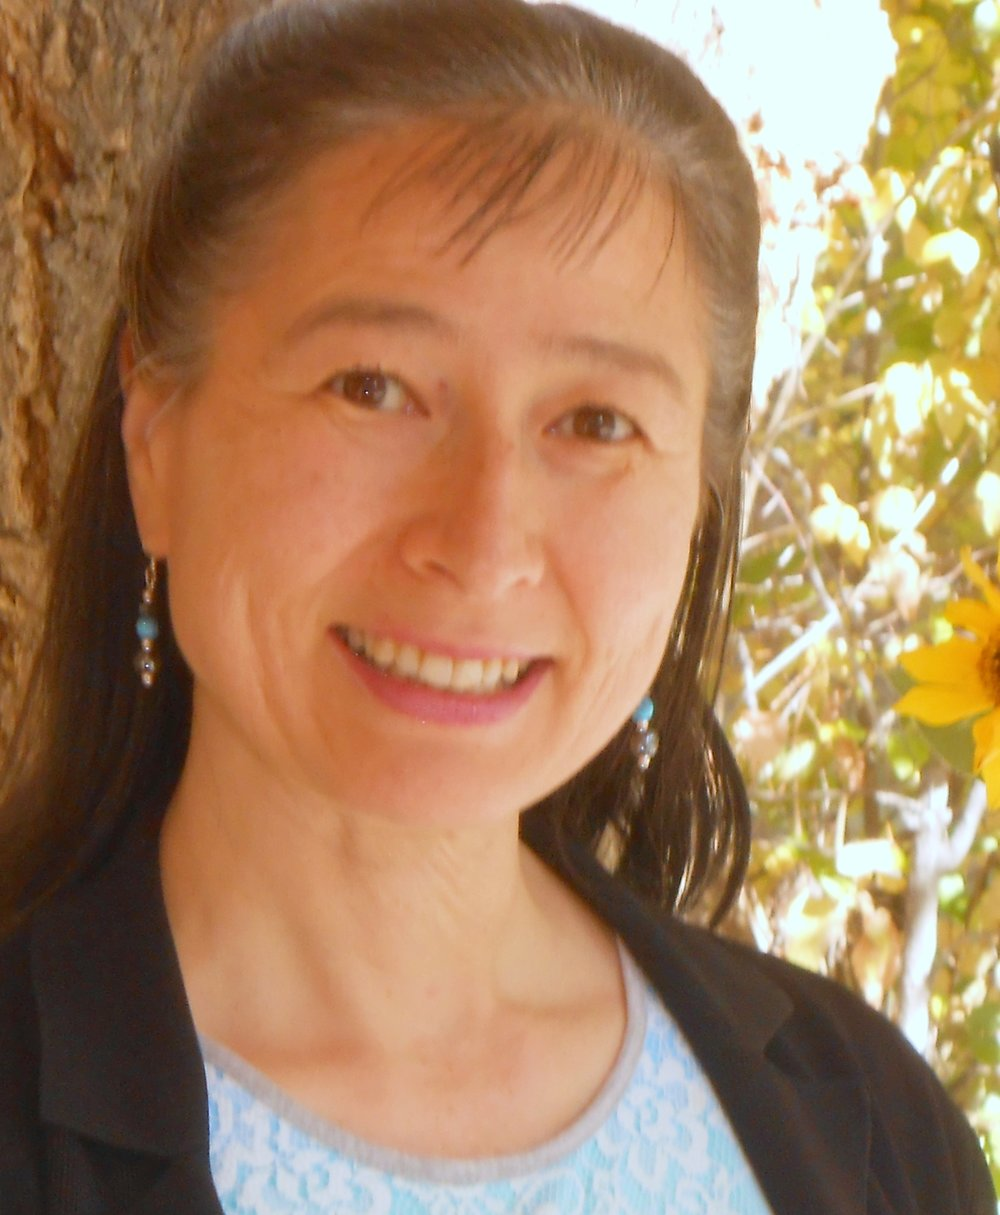 Kyoko Moriyasu Hummel   LMT #072 Licesnsed Instructor # I-119  Since 1991, Kyoko has offered various massage and spa therapies. In October 2000, Kyoko founded Essential Massage and Spa Therapies. She created our Anti-aging Eye Pampering and Herbal Foot Wrap therapies.  In 2016, Kyoko created the Crystal Cocoon Sessions in response to her own profound healing with the Biomat.  Kyoko specializes in Cranio-sacral therapy and prenatal massage. Cranio-sacral helps to enhance the flow of the cerebro-spinal fluid using gentle palpation and is profoundly relaxing. Kyoko delights in working with a firm yet gentle touch. She is also our colon therapist.